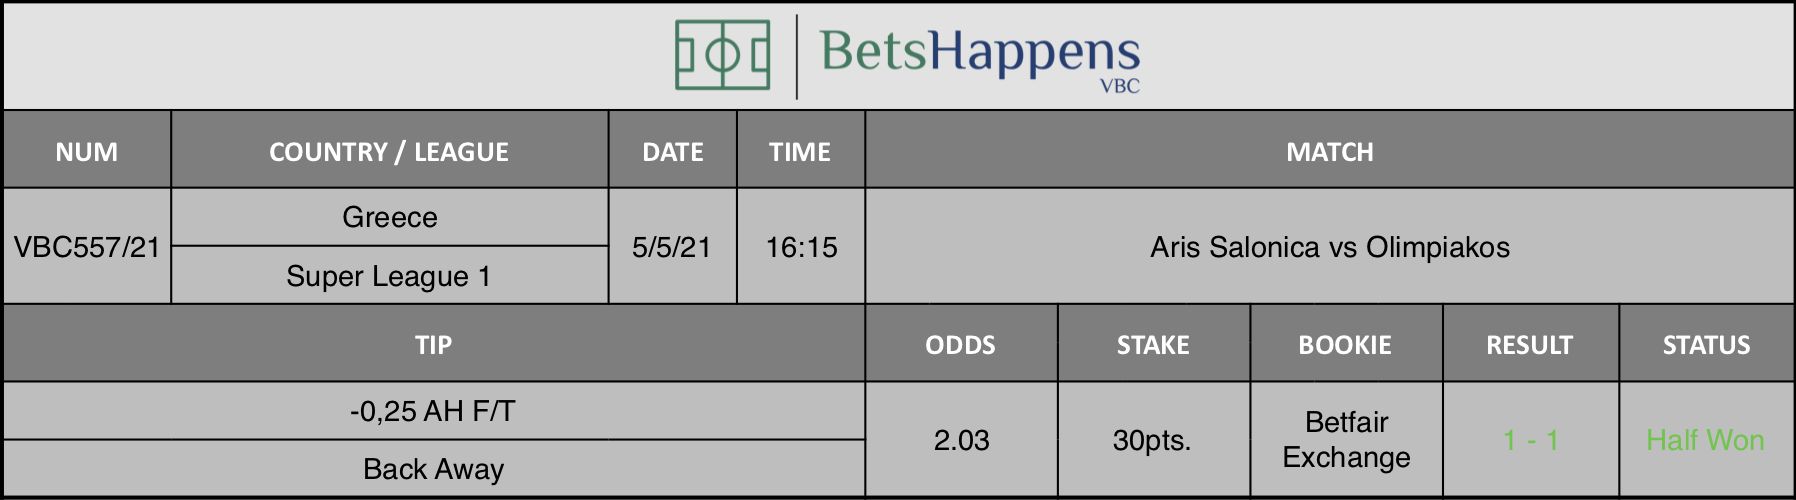 Results of our tip for the Aris Salonica vs Olimpiakos match where -0,25 AH F/T Back Away is recommended.